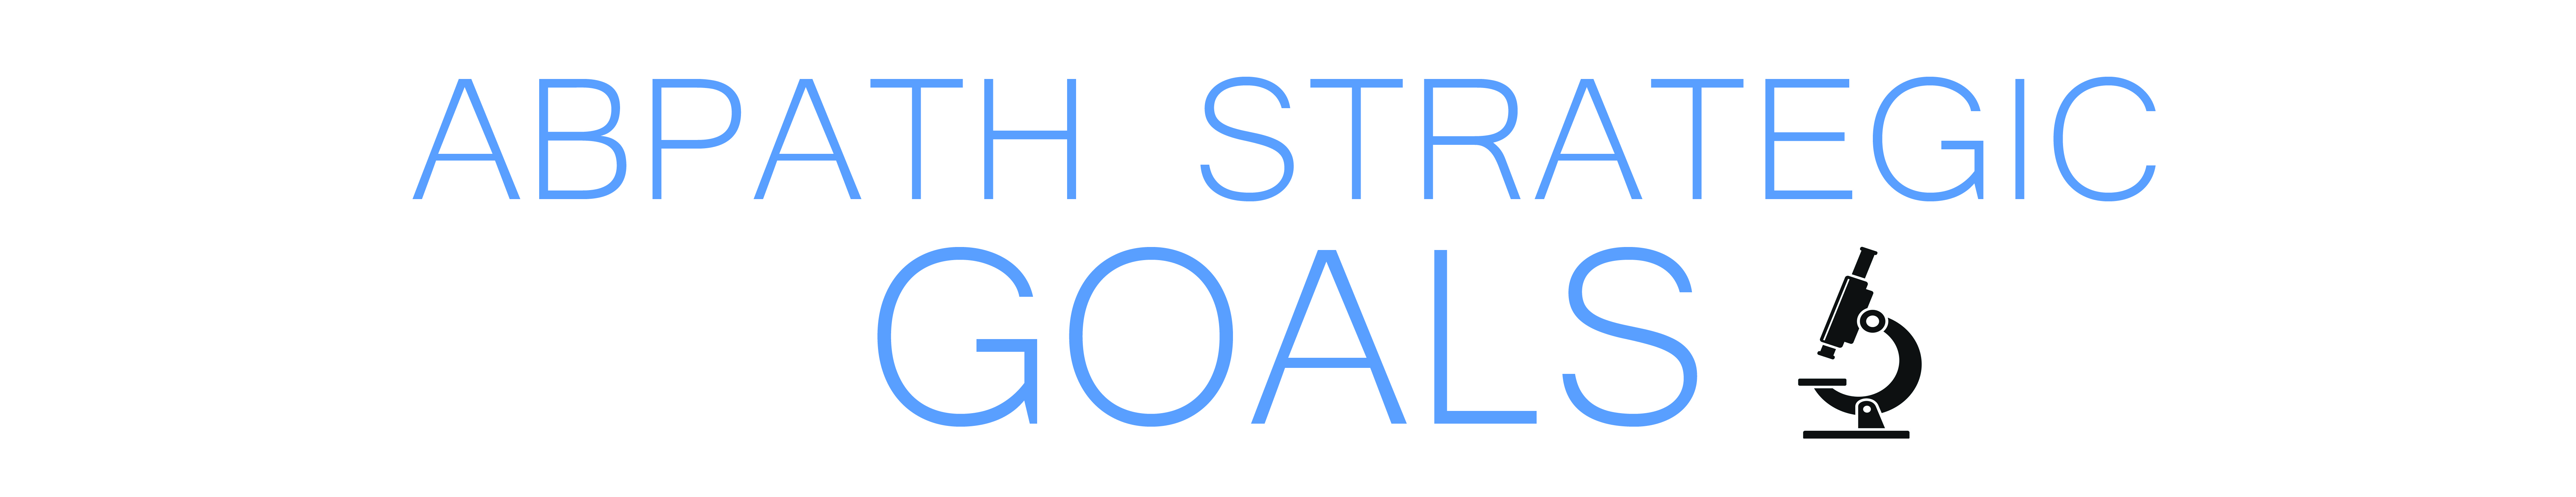 STRATEGIC PLAN GOALS